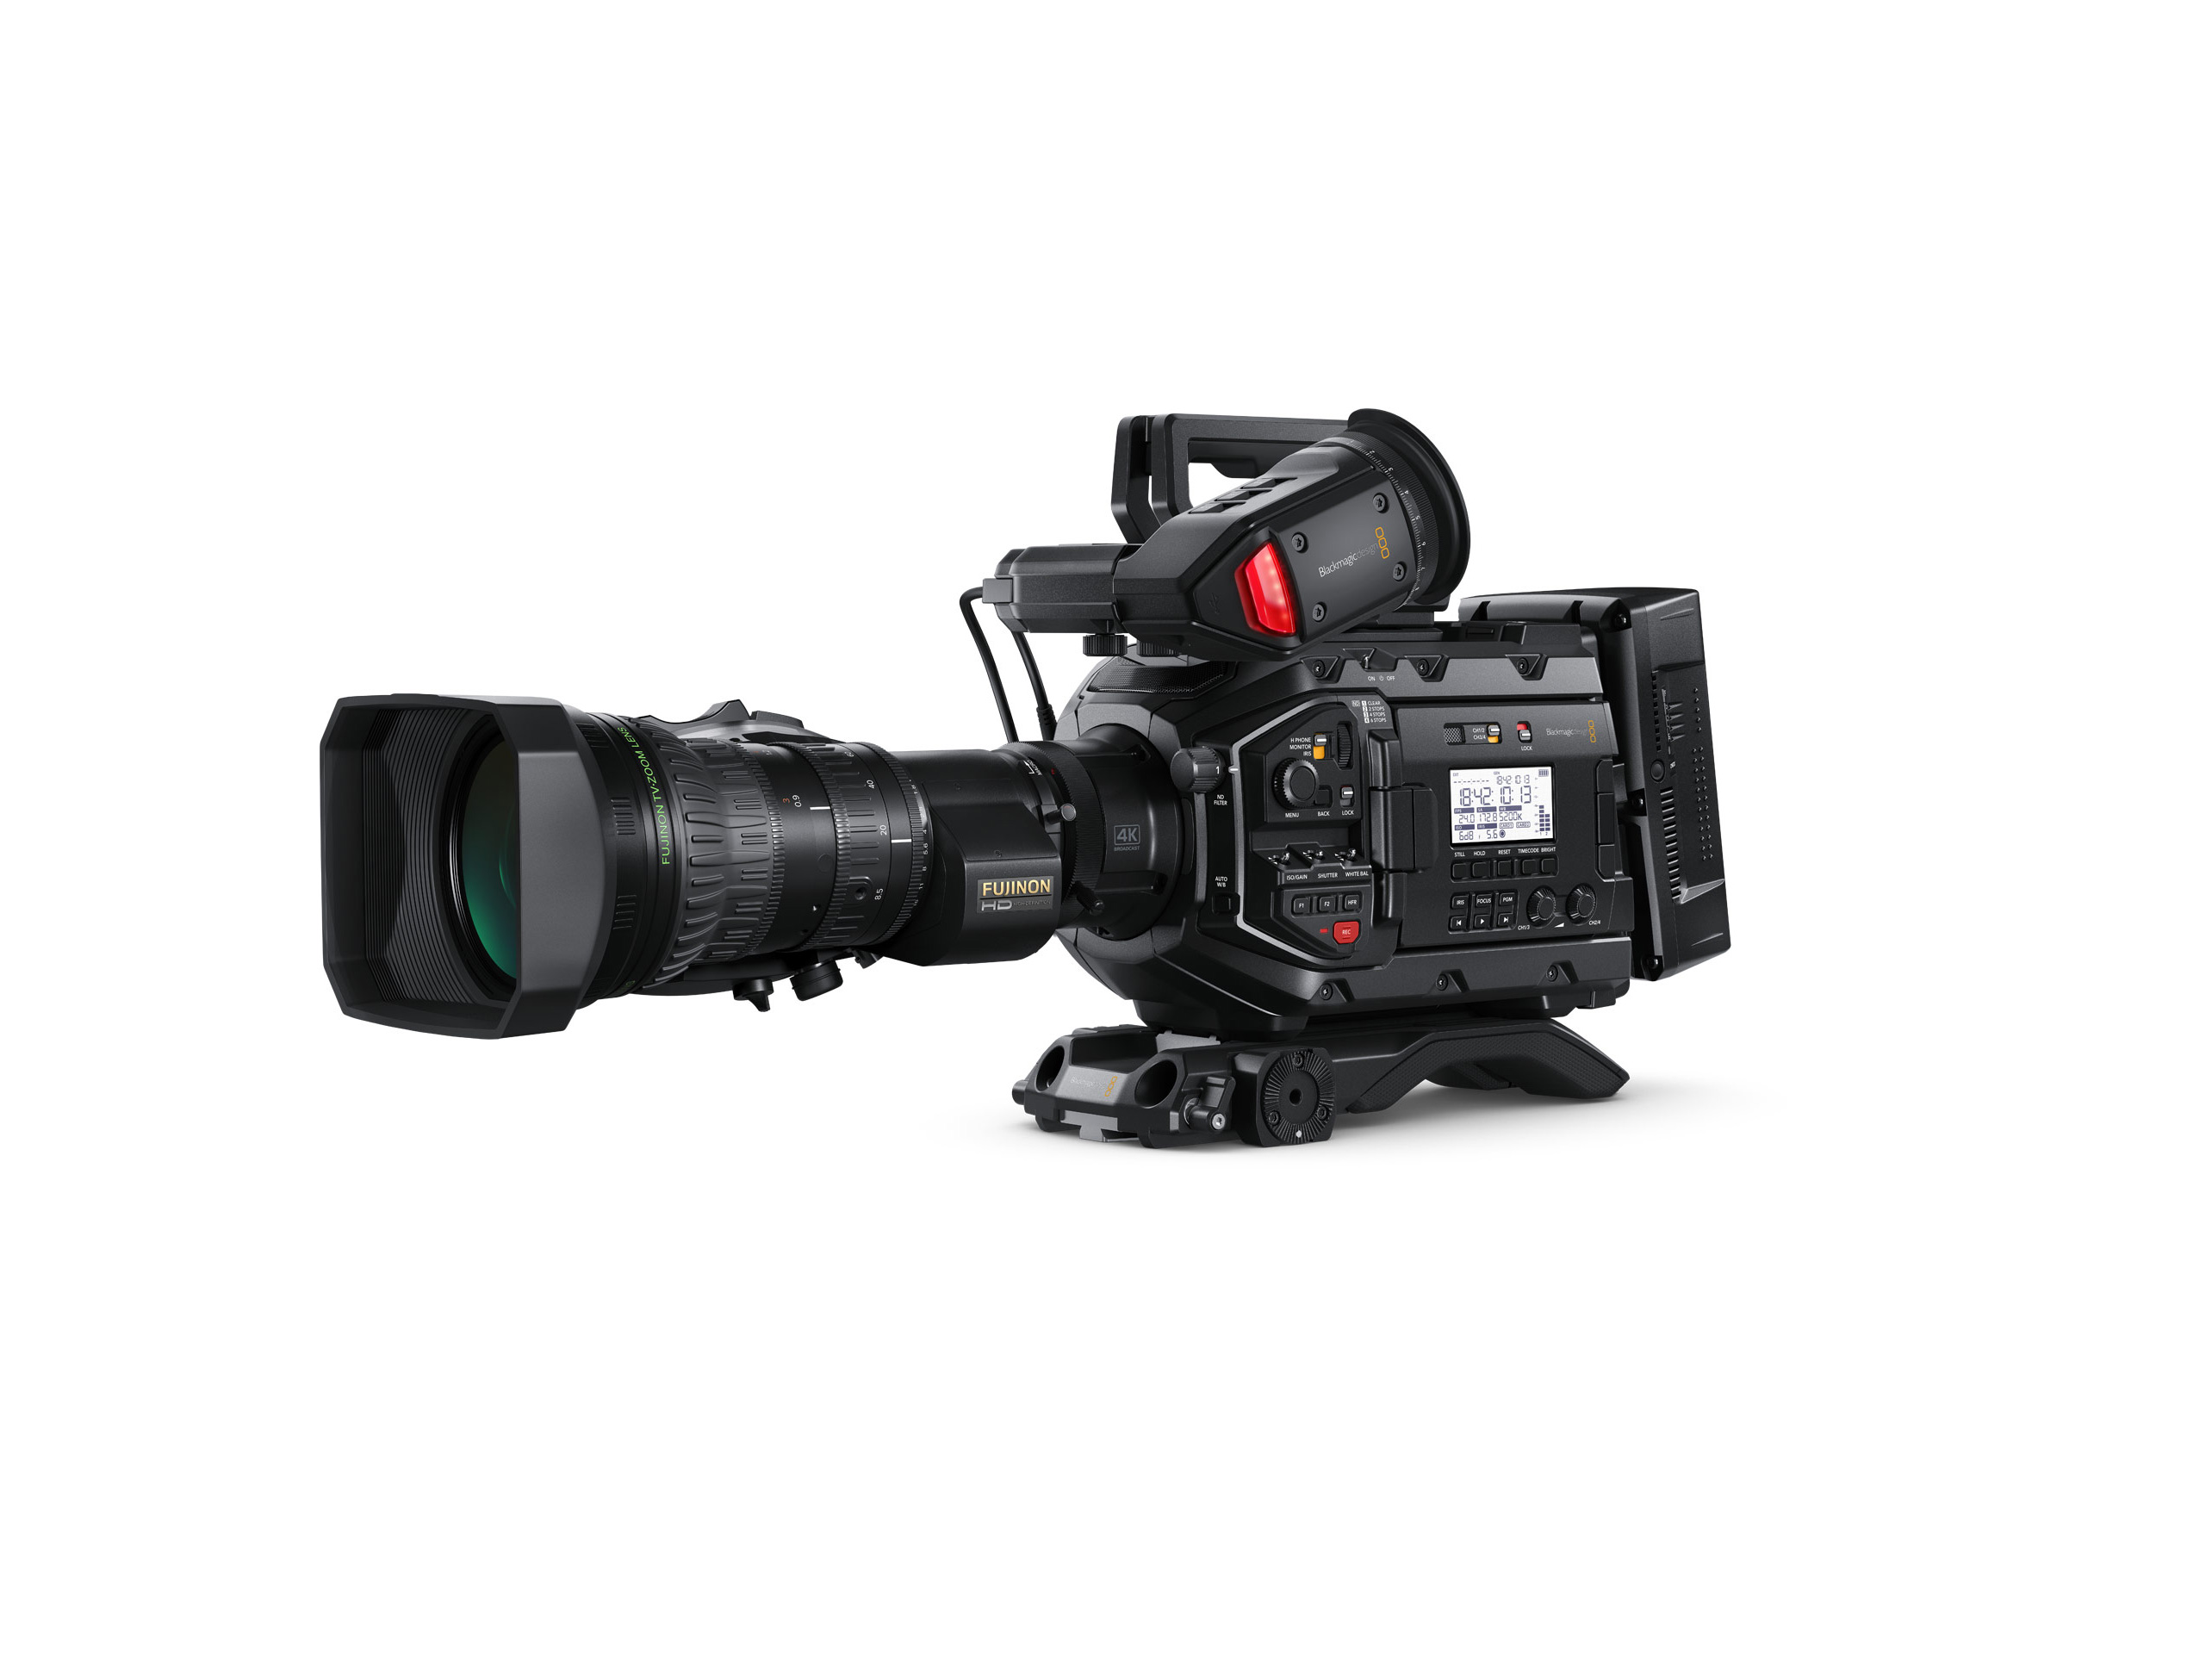 Blackmagic launches 4K broadcast camera for price of a high-end DSLR ...